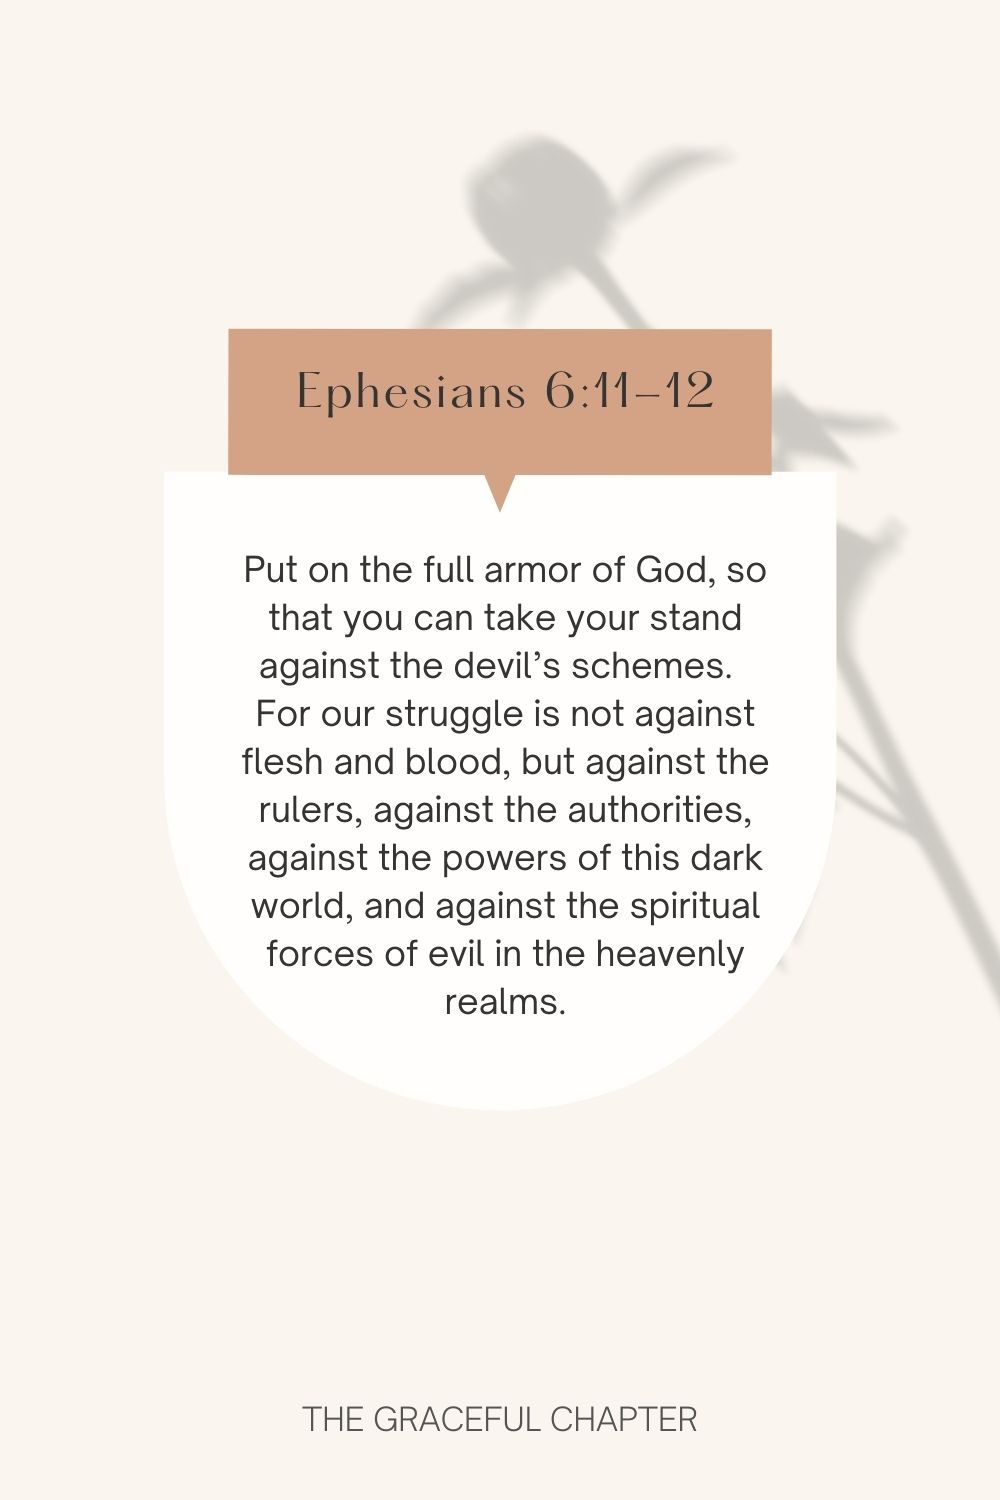 Put on the full armor of God, so that you can take your stand against the devil's schemes.  For our struggle is not against flesh and blood, but against the rulers, against the authorities, against the powers of this dark world, and against the spiritual forces of evil in the heavenly realms. Ephesians 6:11-12